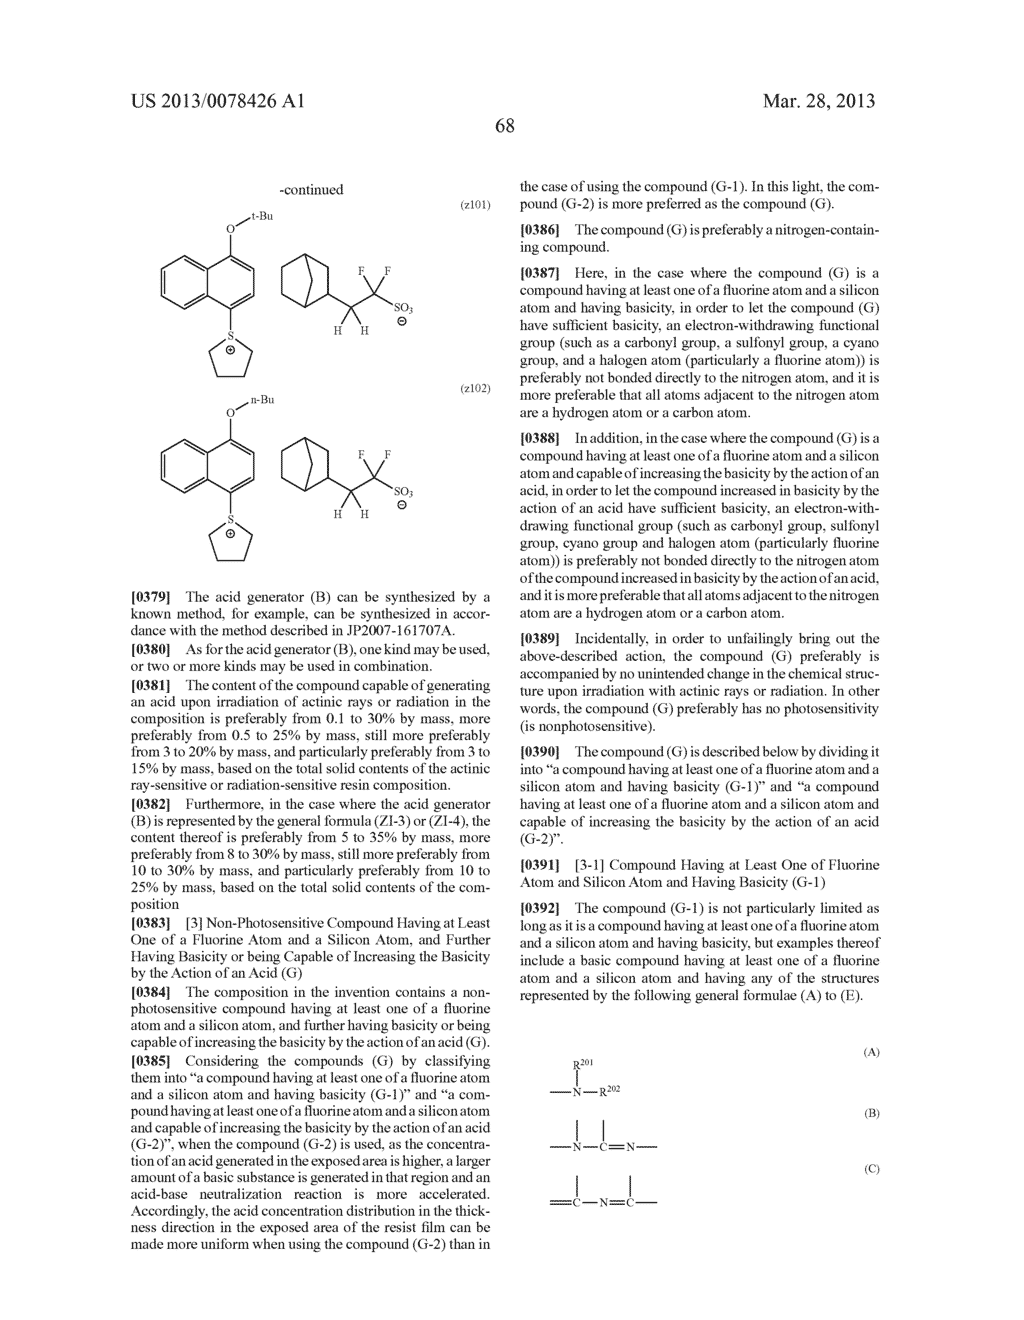 ACTINIC RAY-SENSITIVE OR RADIATION-SENSITIVE RESIN COMPOSITION, AND RESIST     FILM, PATTERN FORMING METHOD, METHOD FOR PREPARING ELECTRONIC DEVICE, AND     ELECTRONIC DEVICE, EACH USING THE SAME - diagram, schematic, and image 69